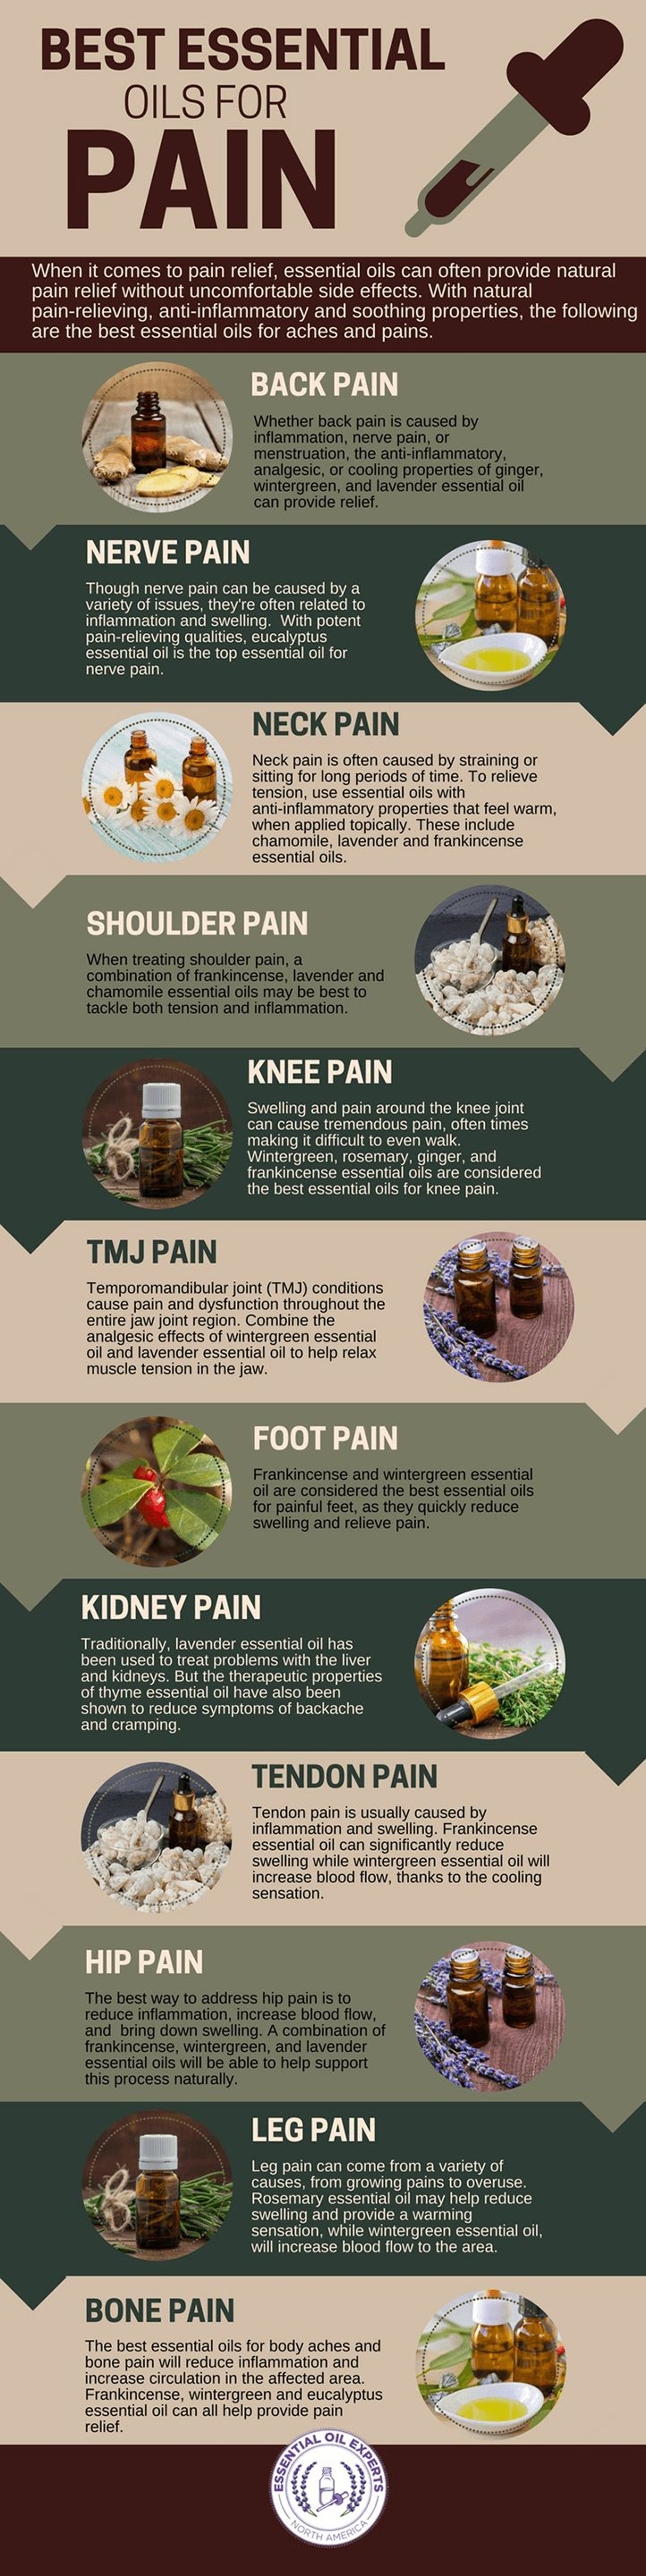 The most effective essential oils for pain including essential oils for back pain, essential oils for joint pain and essential oils for neck pain.